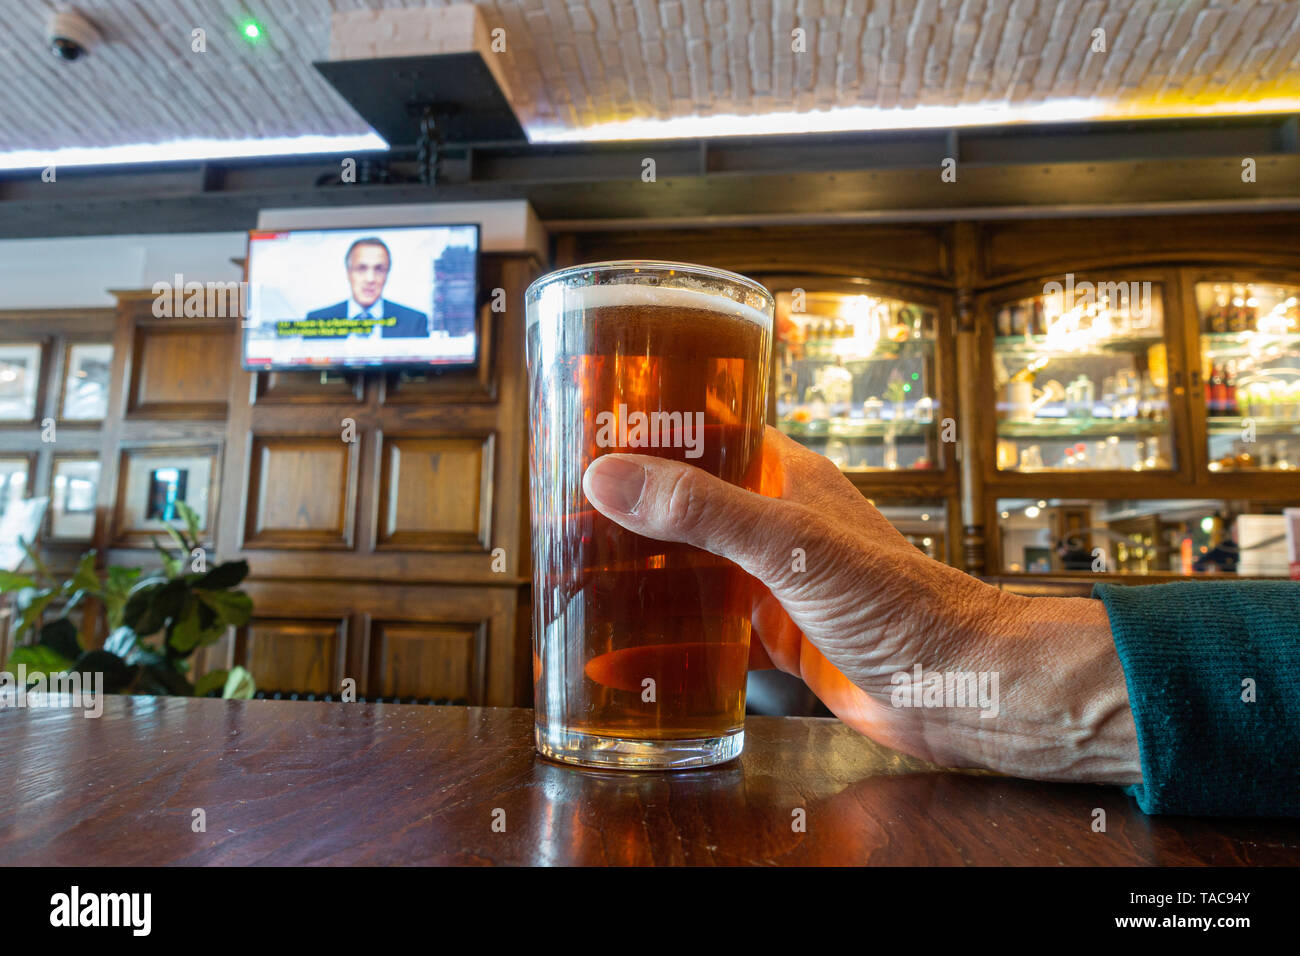 Person holding pint of craft beer in pub with news on TV in background. UK - Stock Image